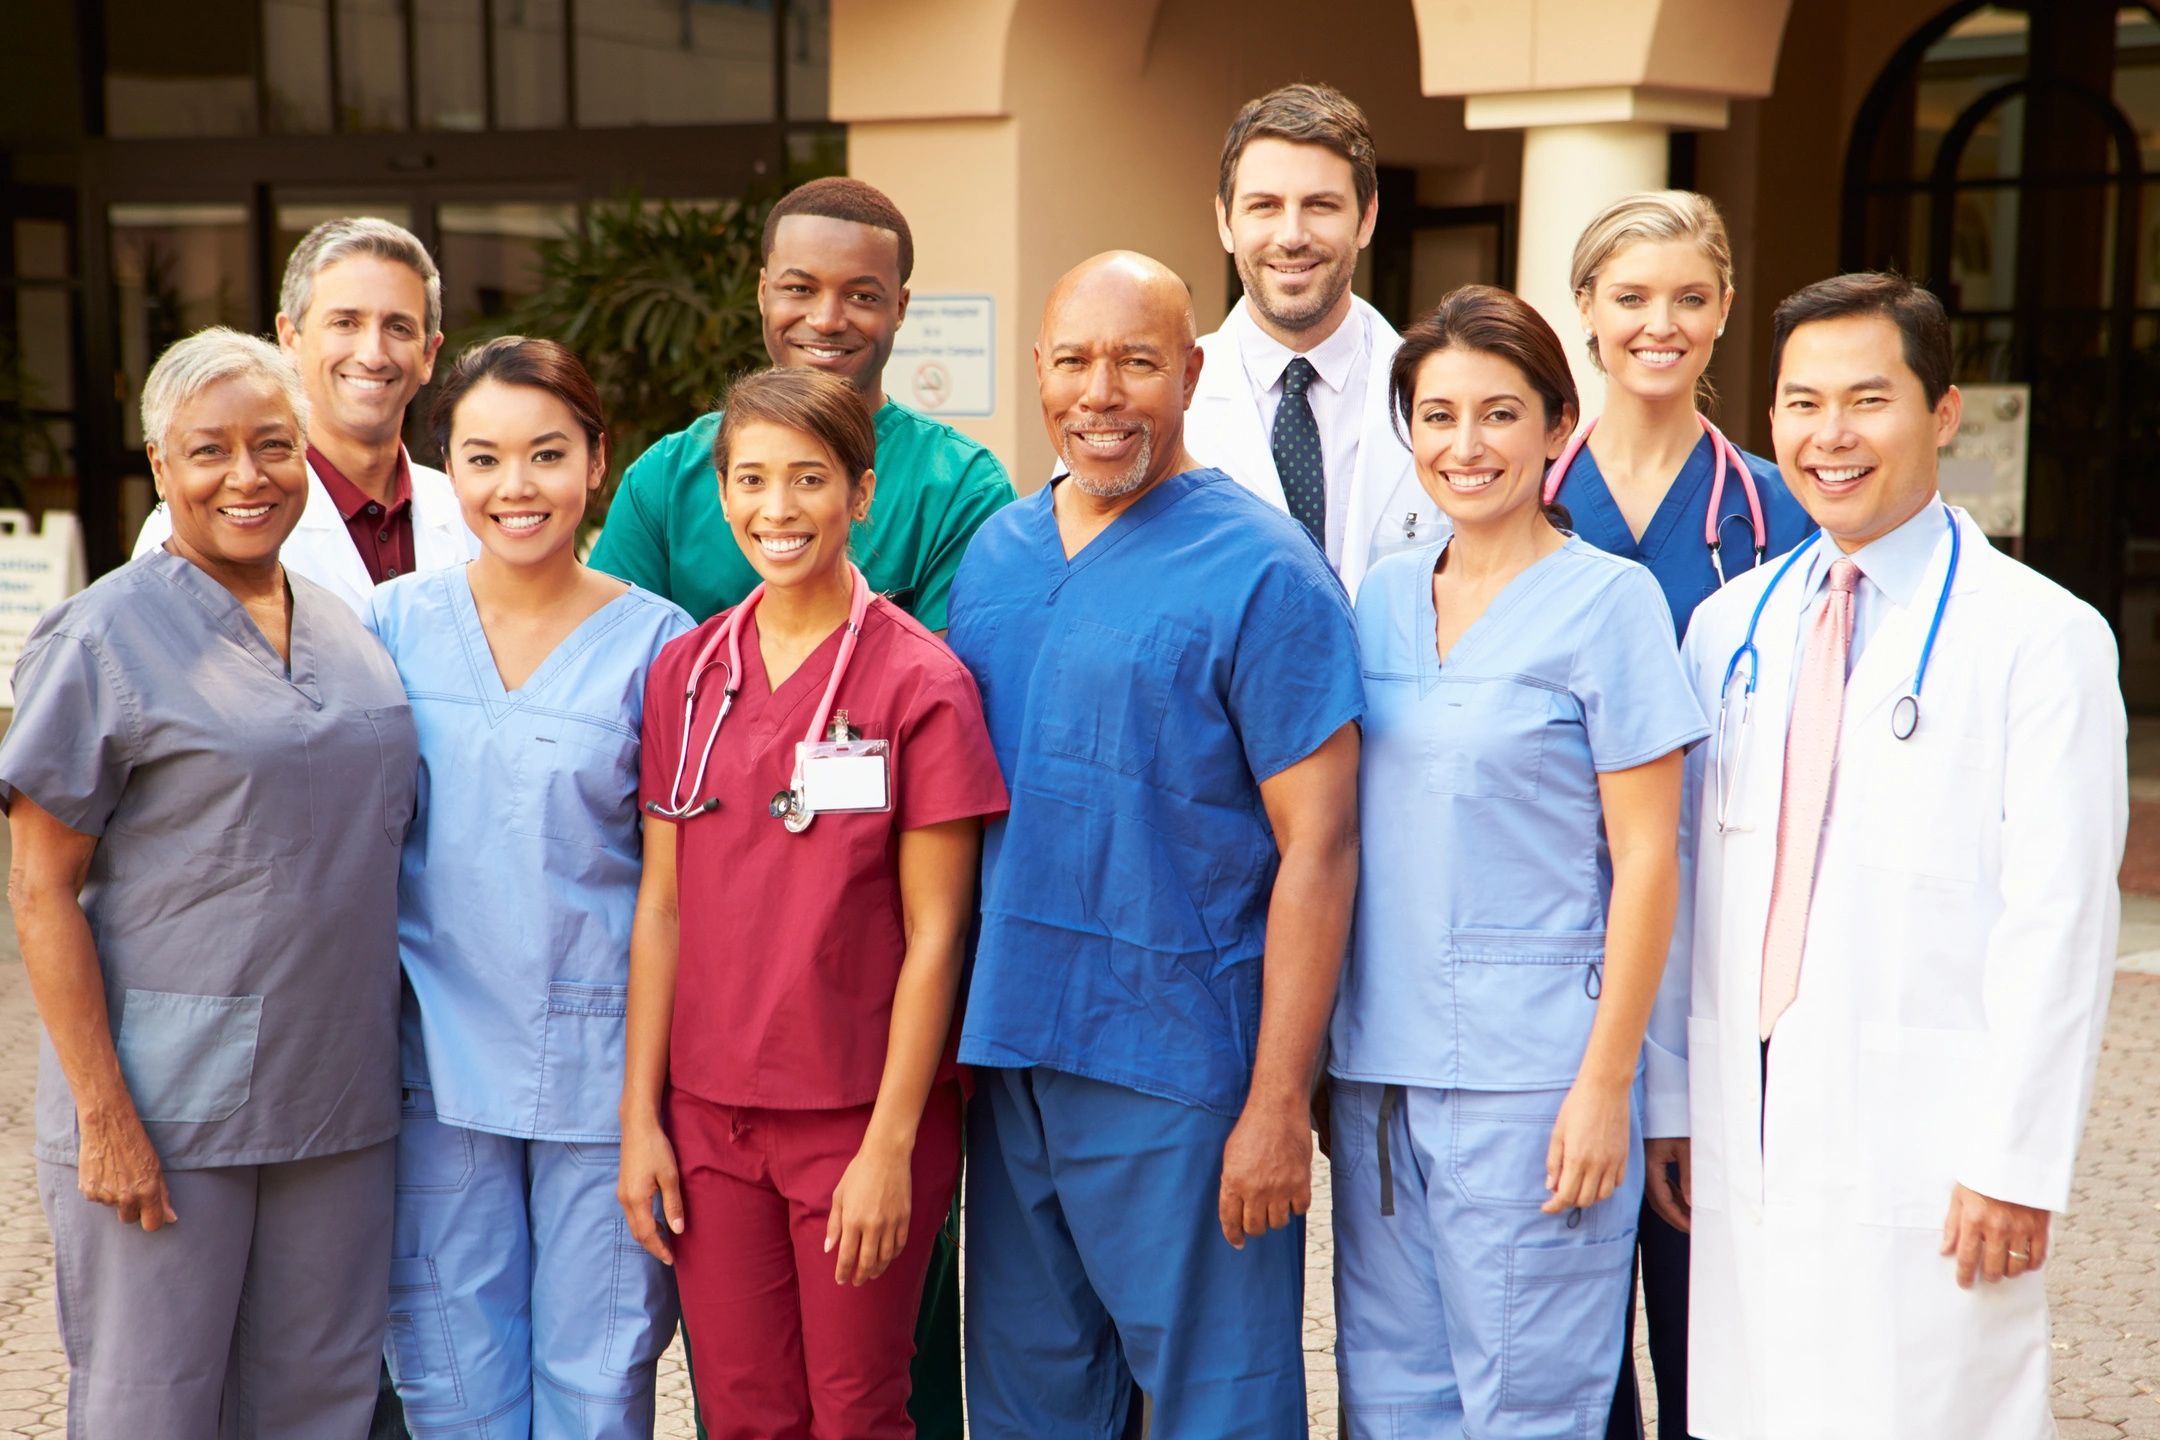 Diverse group of ten medical professionals of many ages, races, and genders standing outside of a building. 7 are in scrubs of various colors and three are wearing white coats.